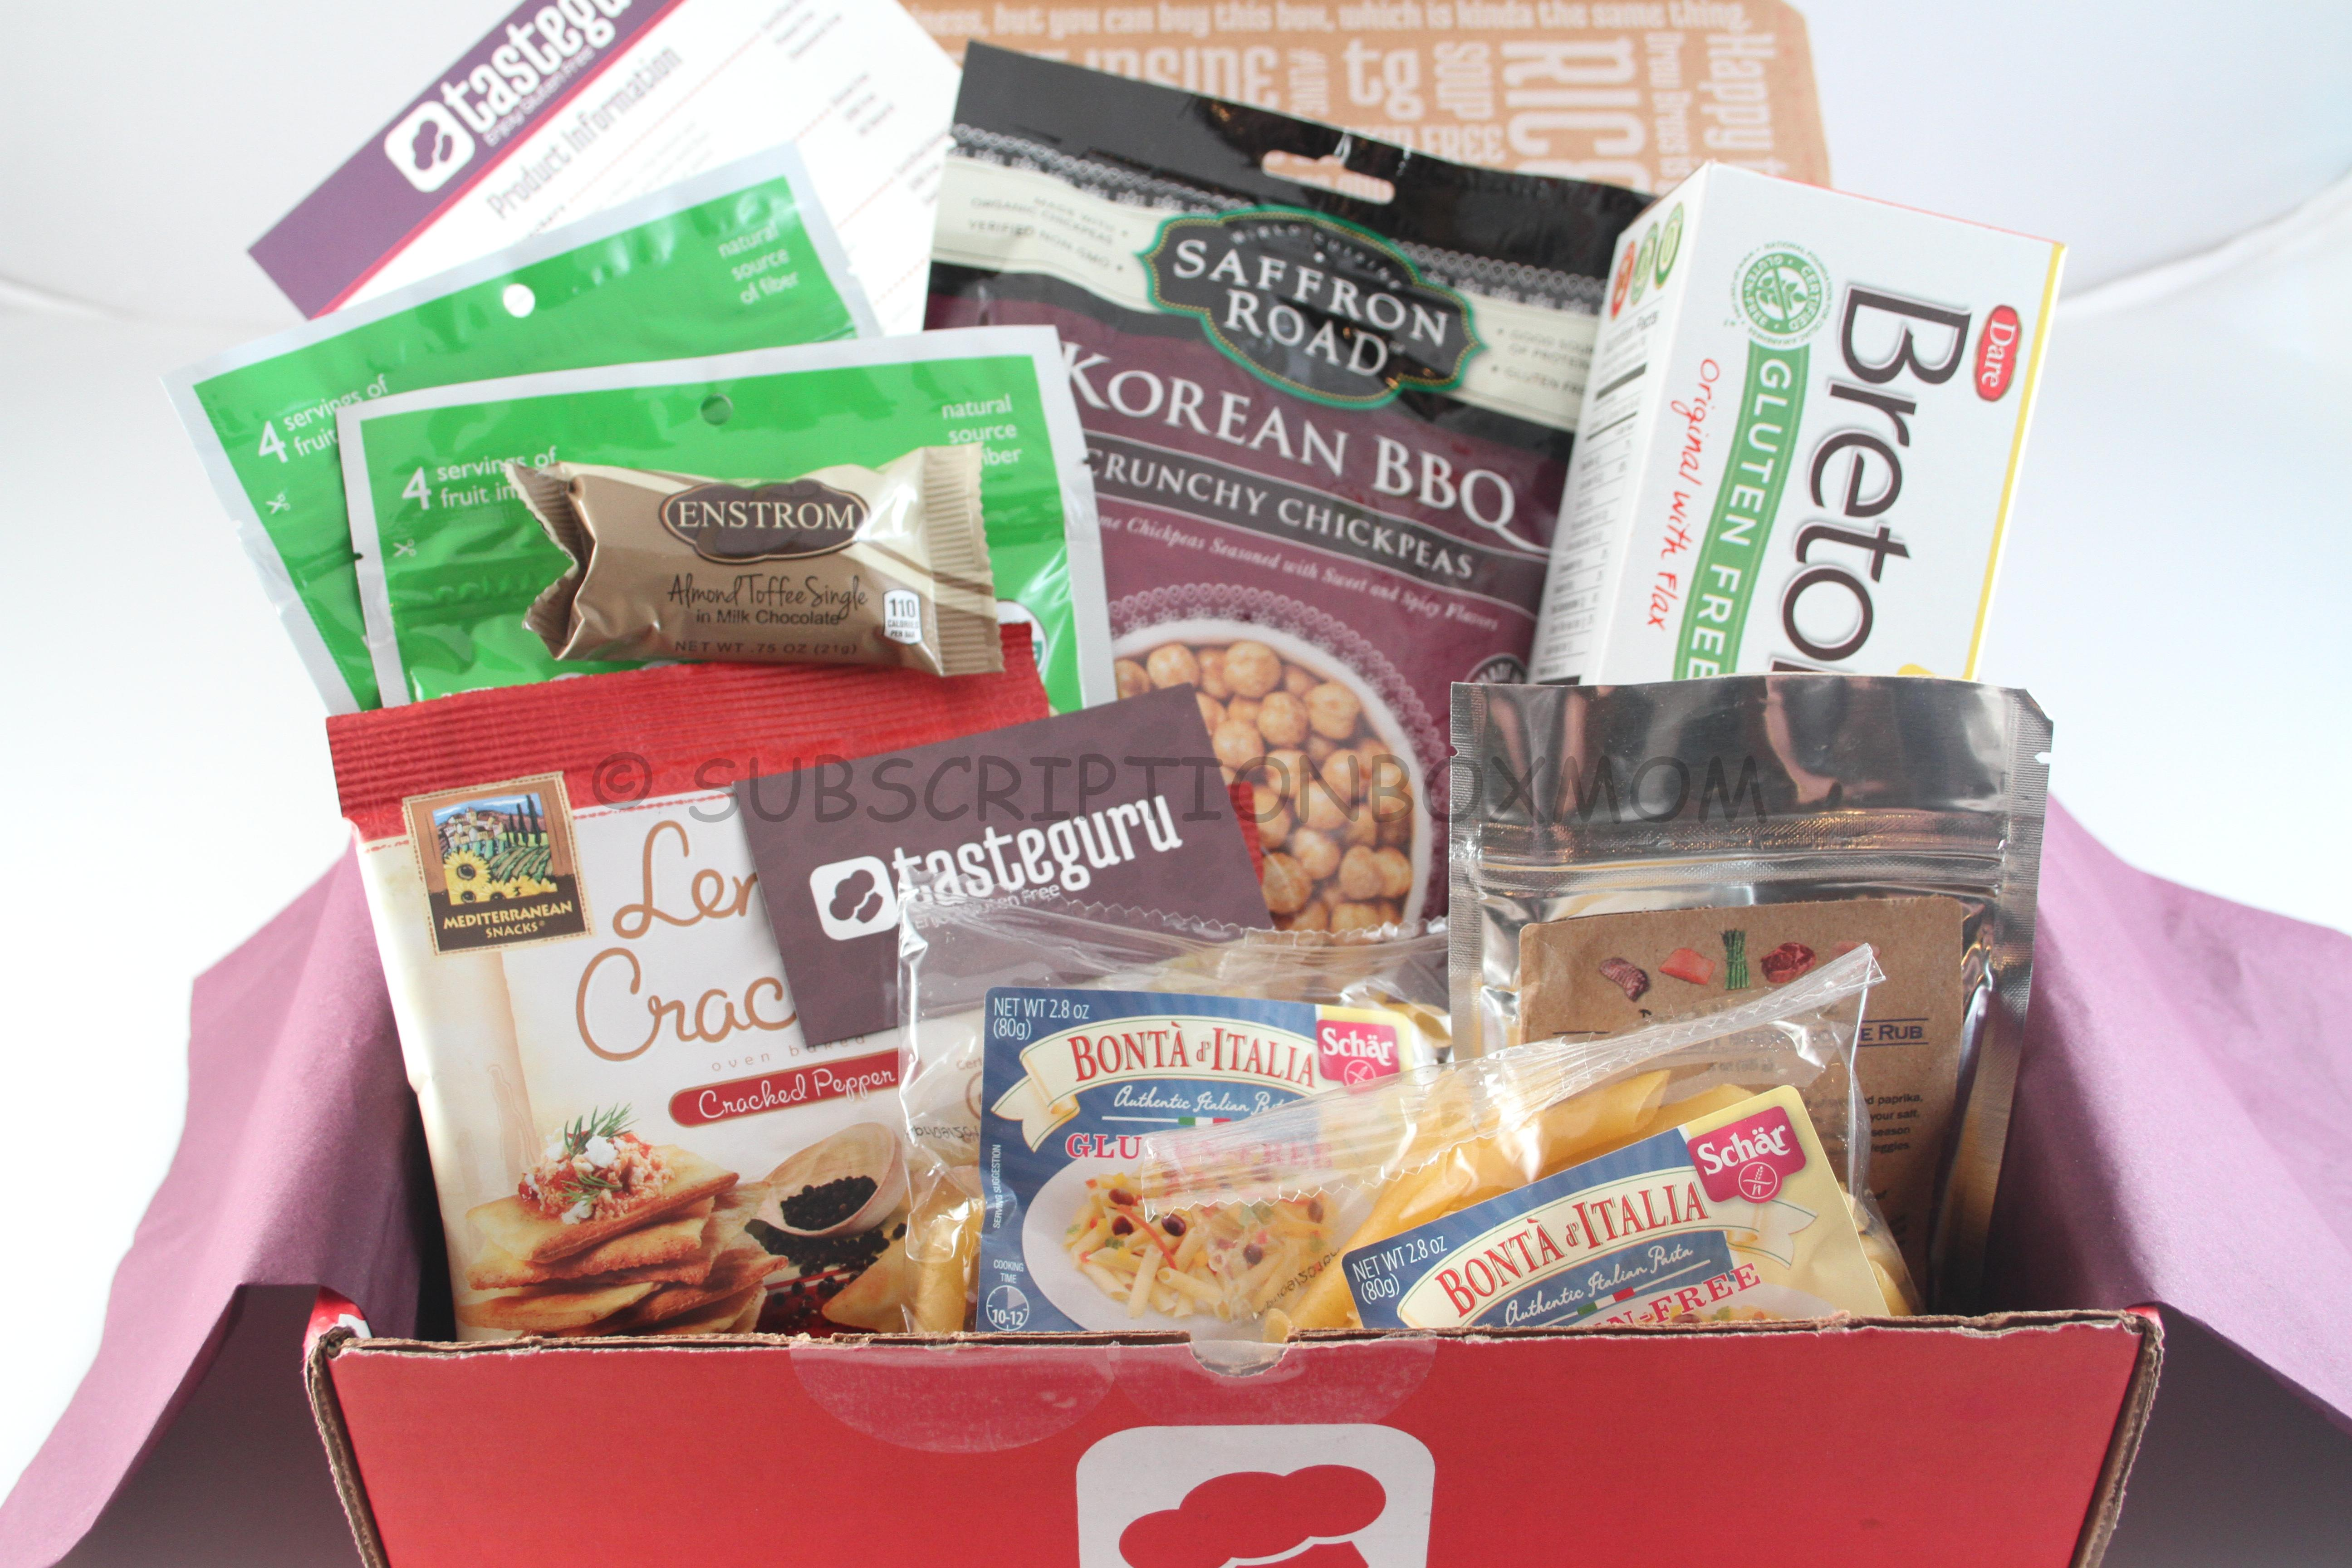 Taste guru october 2014 review bonus gifts gluten free box guru magnet and a enstrom almond toffee milk chocolate bar thrown as bonus items i dont love toffee so i will give this to my mom who will lvoe it negle Image collections